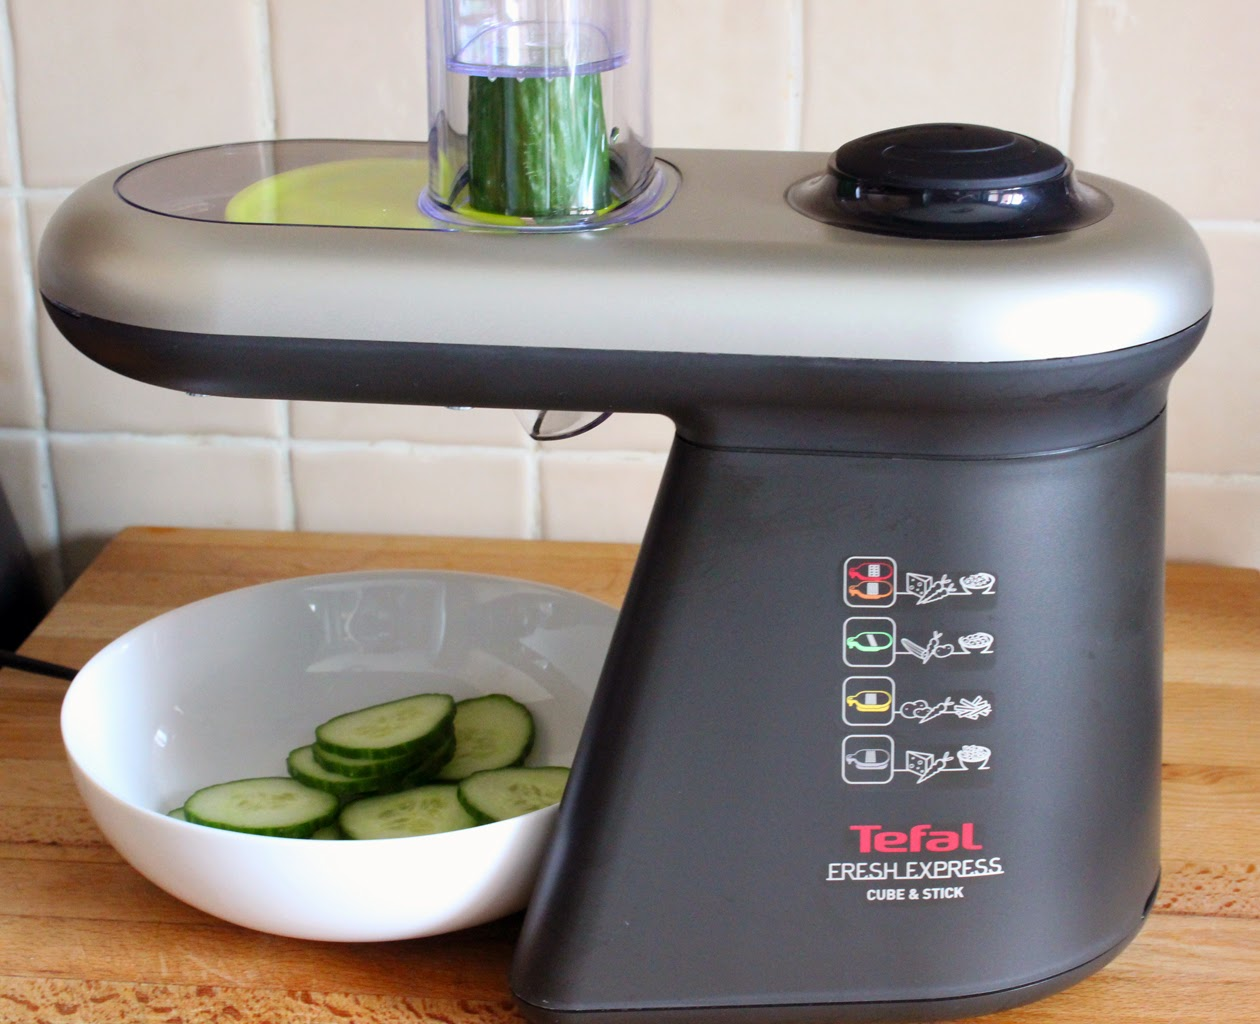 Tefal Fresh Express Cube and Stick slicing cucumber